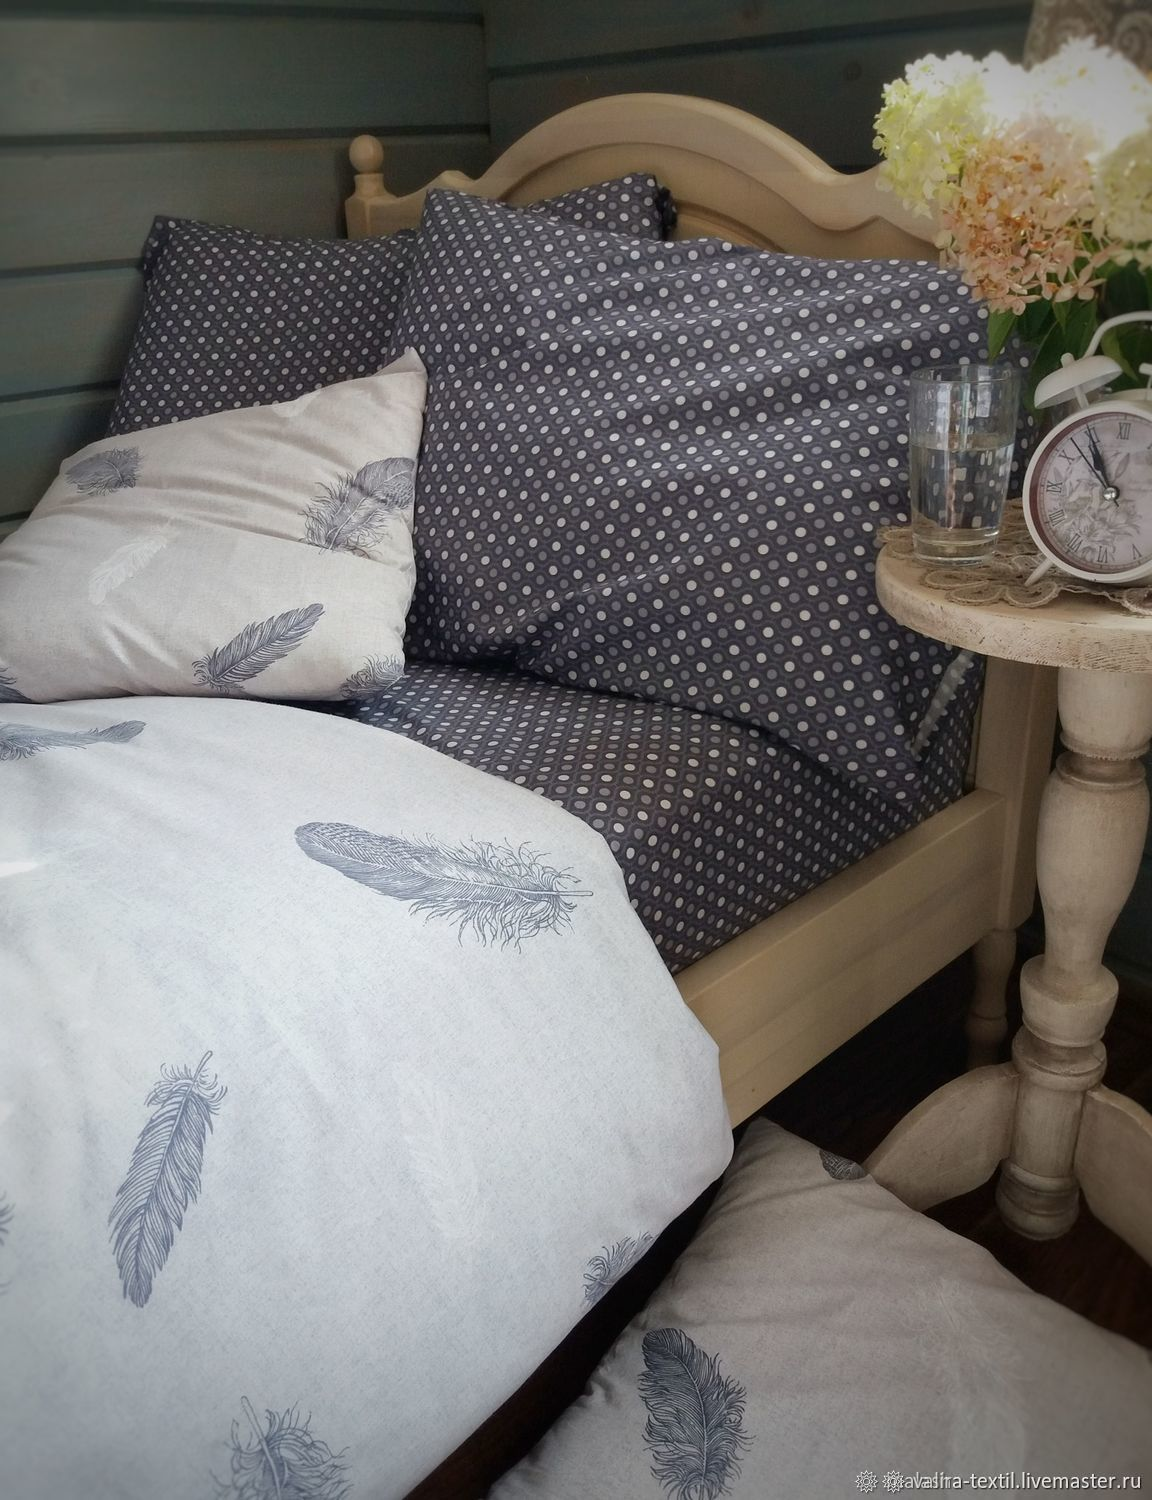 Home Textiles Carpets Handmade Bed Linen Phoenix Sweet Things My